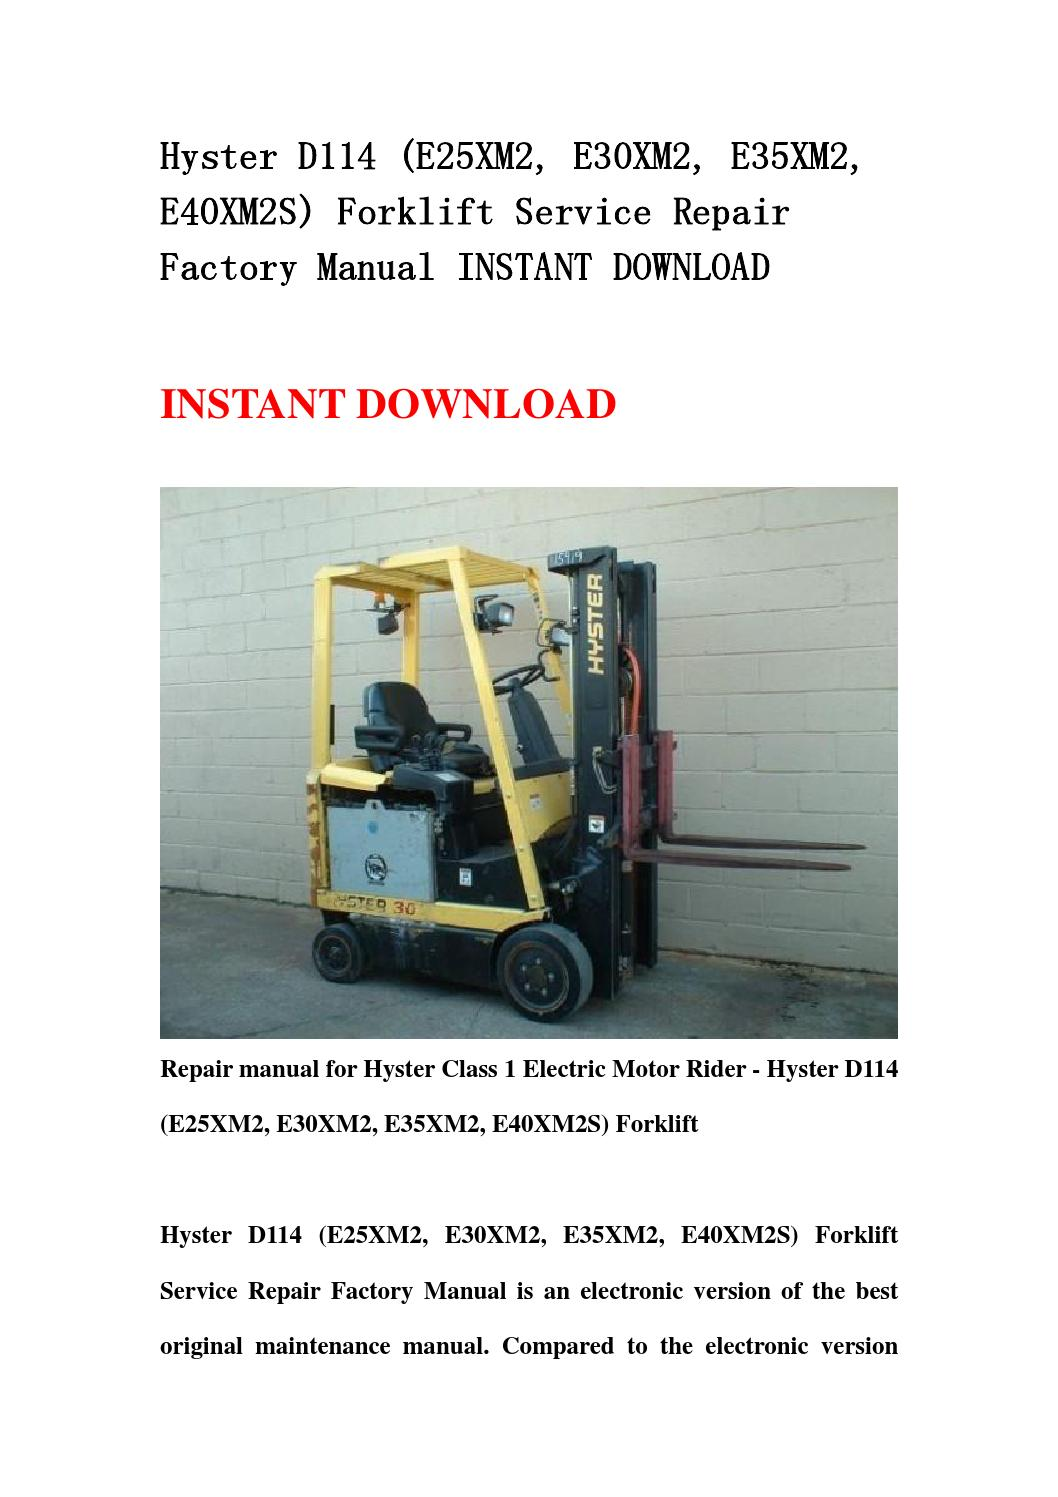 Wiring Diagram Further Hyster Forklift Wiring Diagram As Well 30